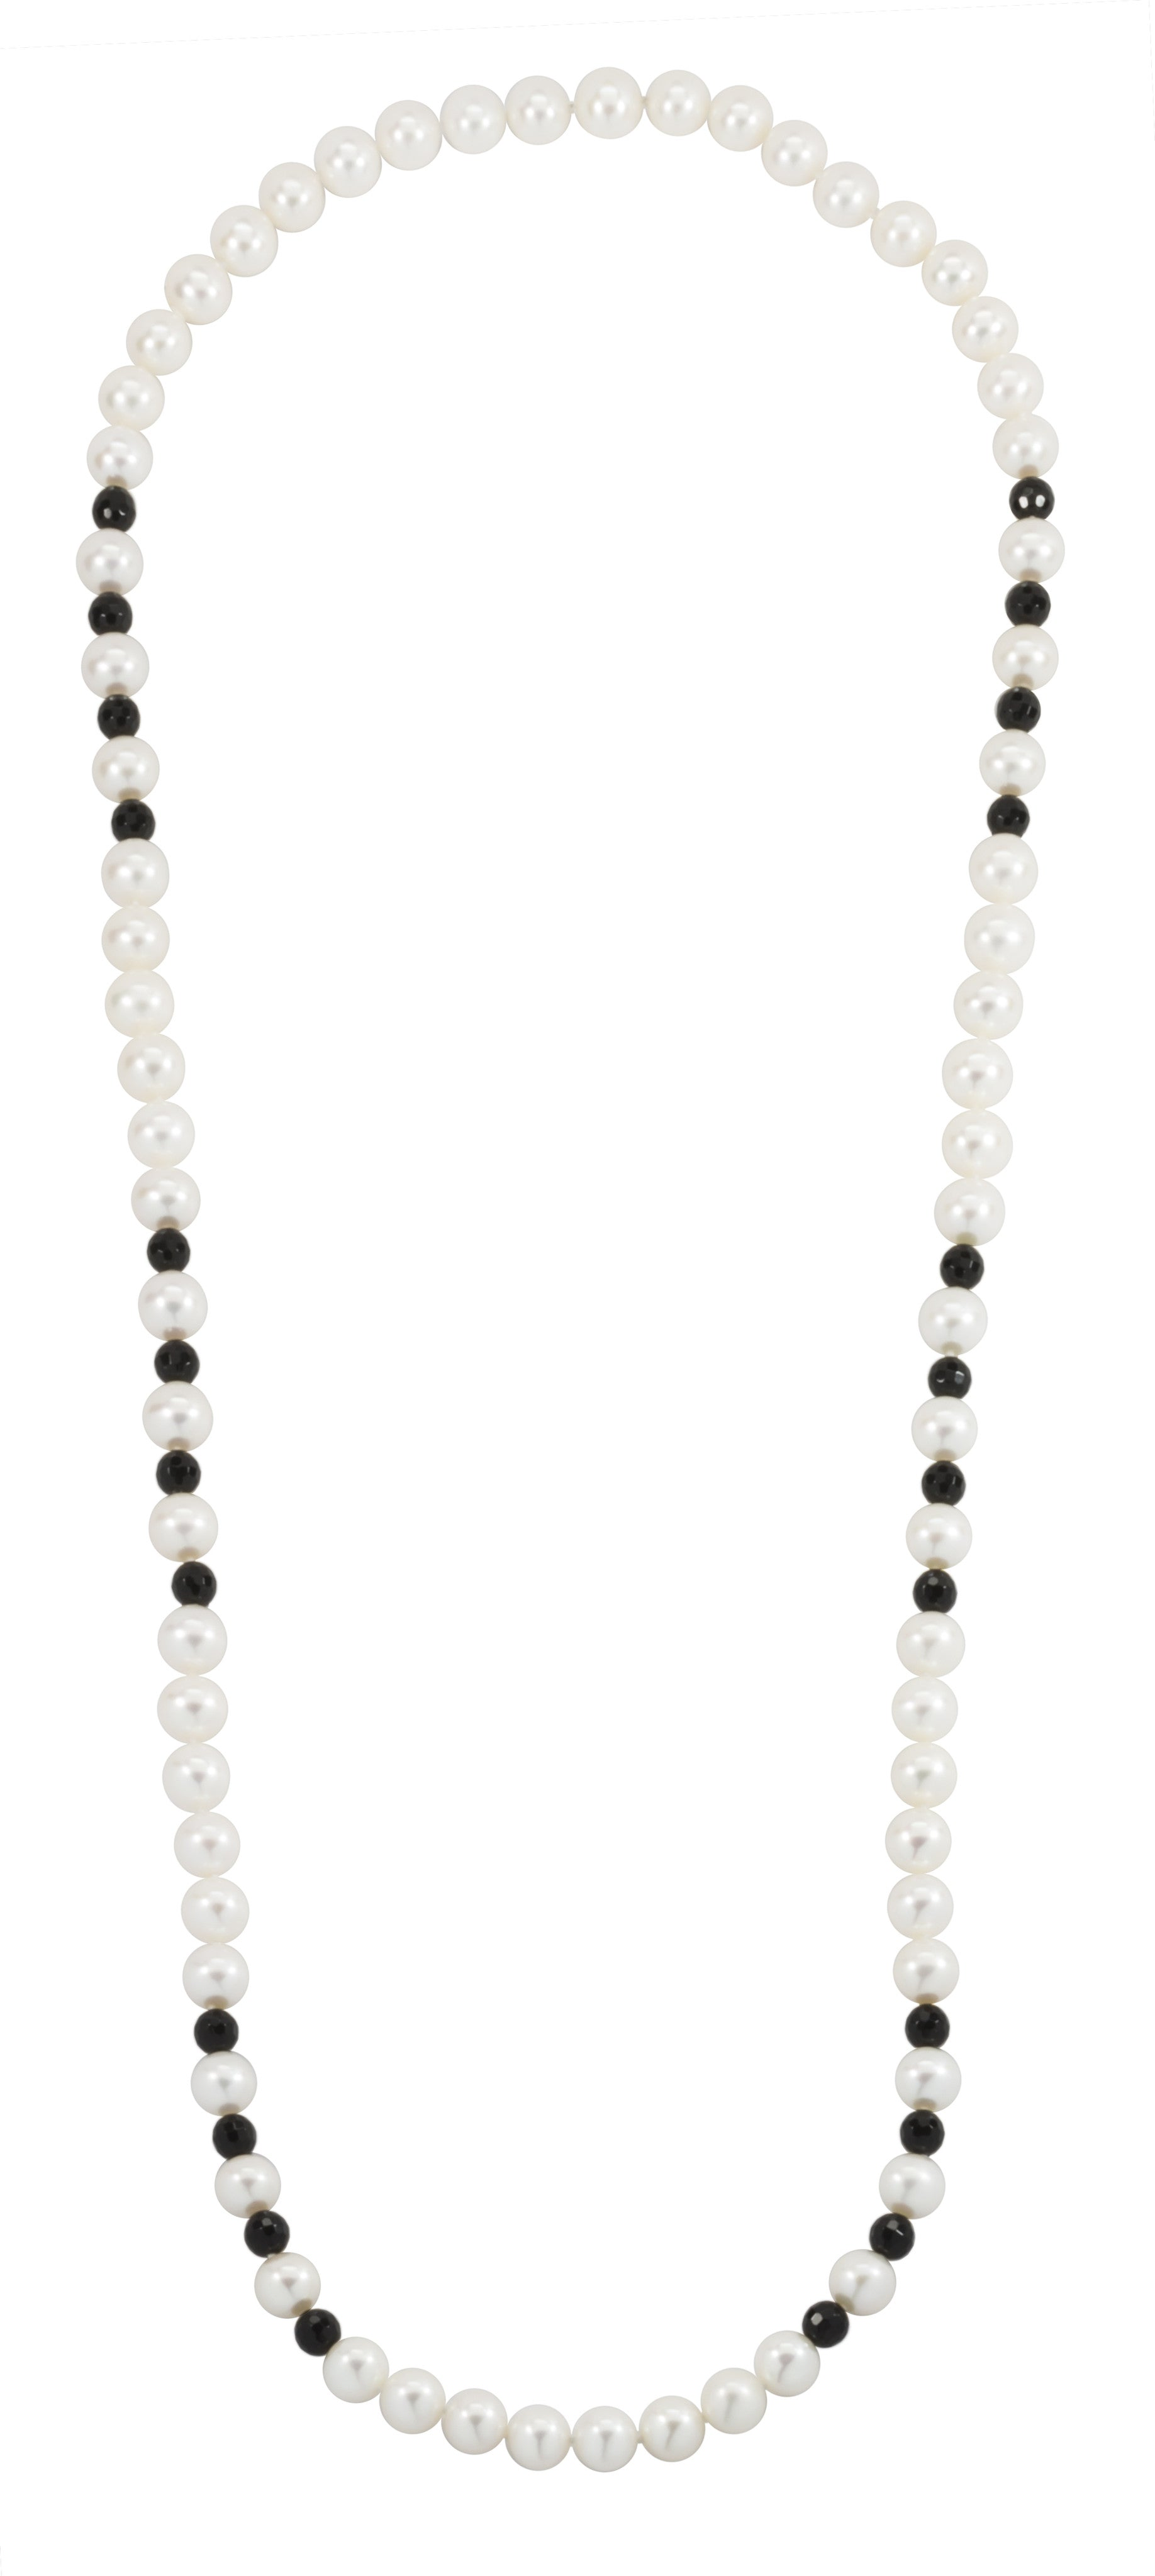 White Freshwater Pearl & Faceted Black Onyx Beads Endless Necklace